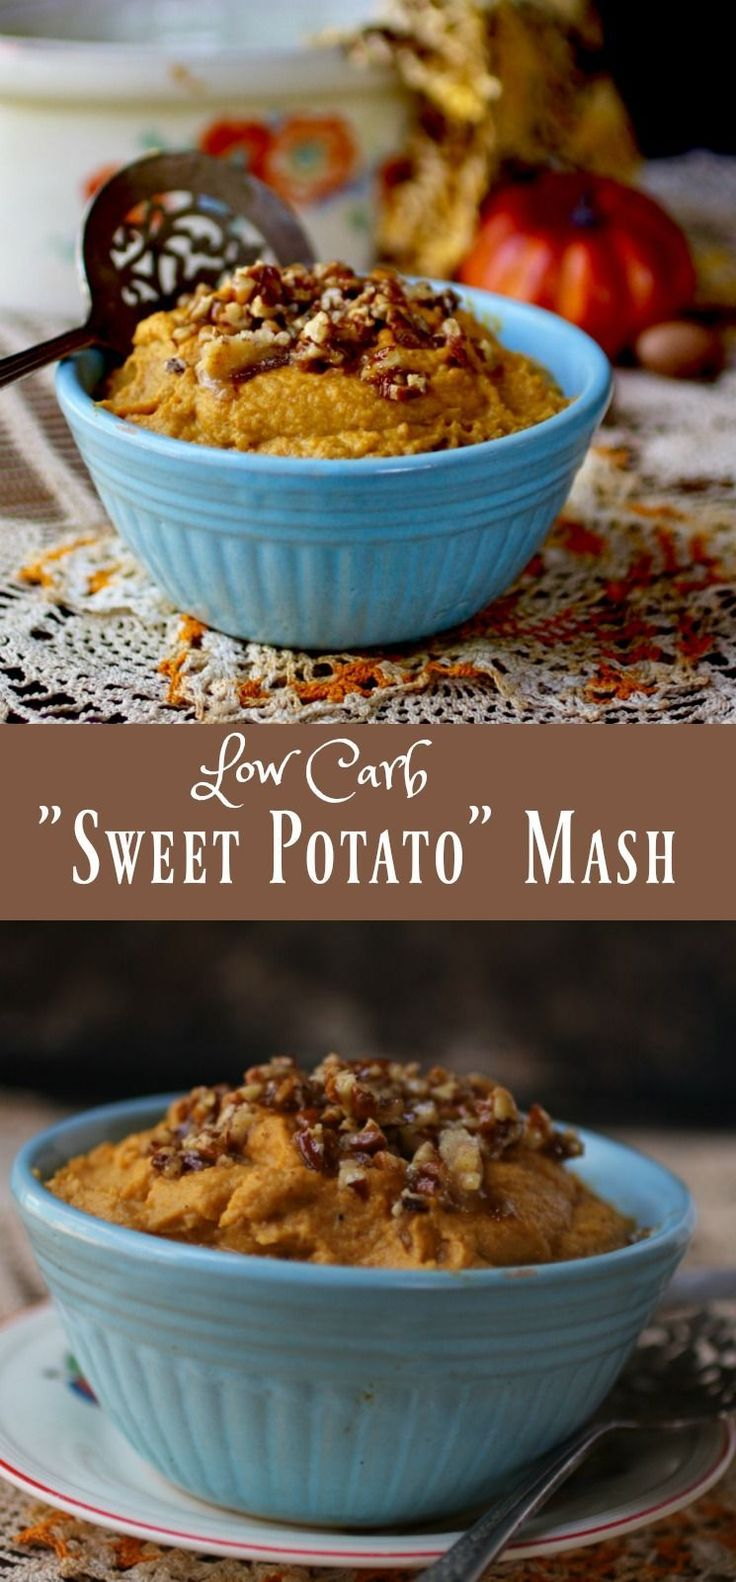 Creamy and buttery, this low carb sweet potato mash with pecan topping has just 5.3 net carbs per serving.The candied pecan topping makes this easy recipe the perfect side dish. From Lowcarb-ology.com